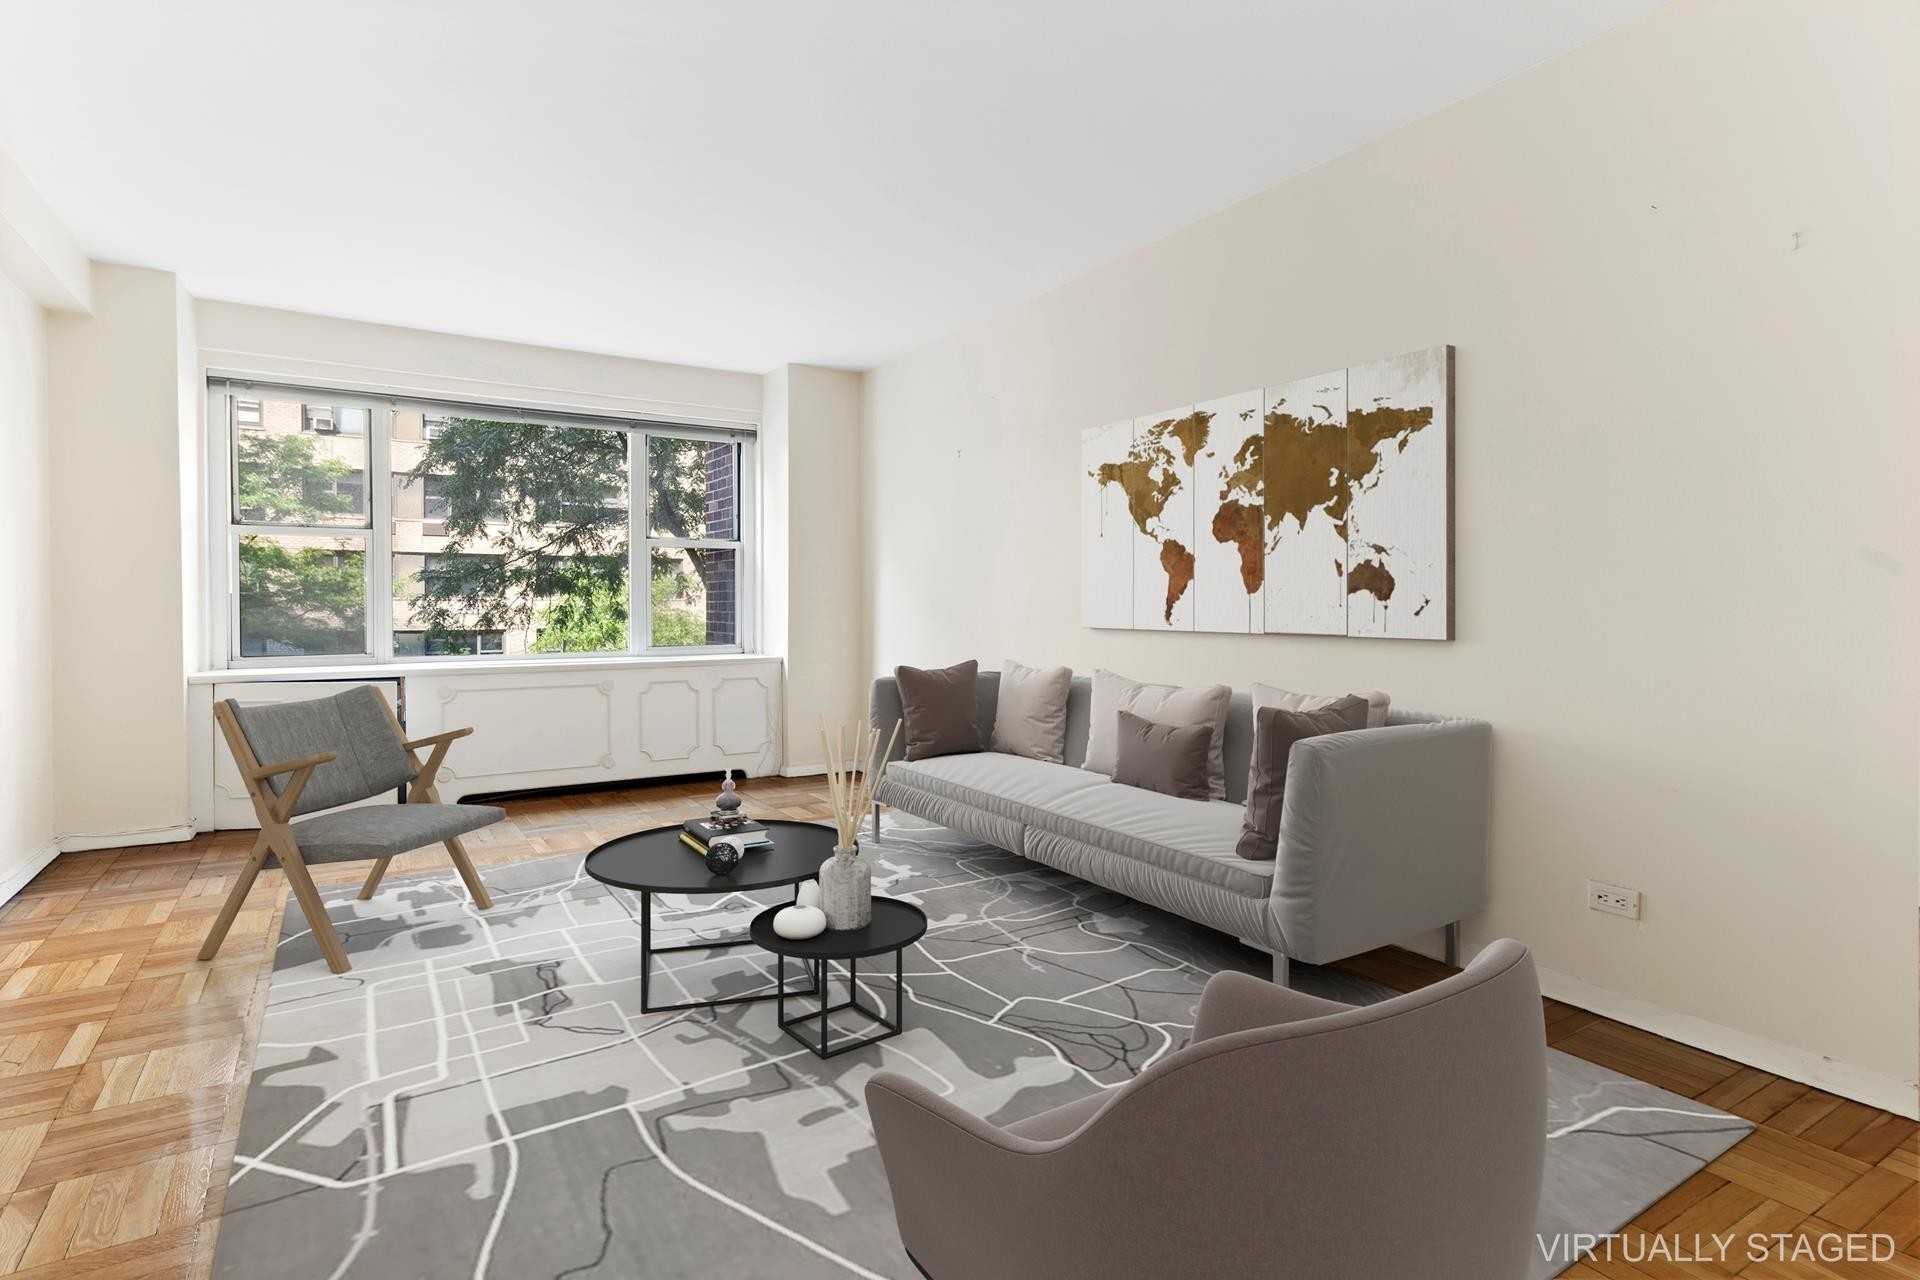 Property в The Gregory House, 440 E 79TH ST , 3F Верхняя Ист-Сайд, New York, NY 10075